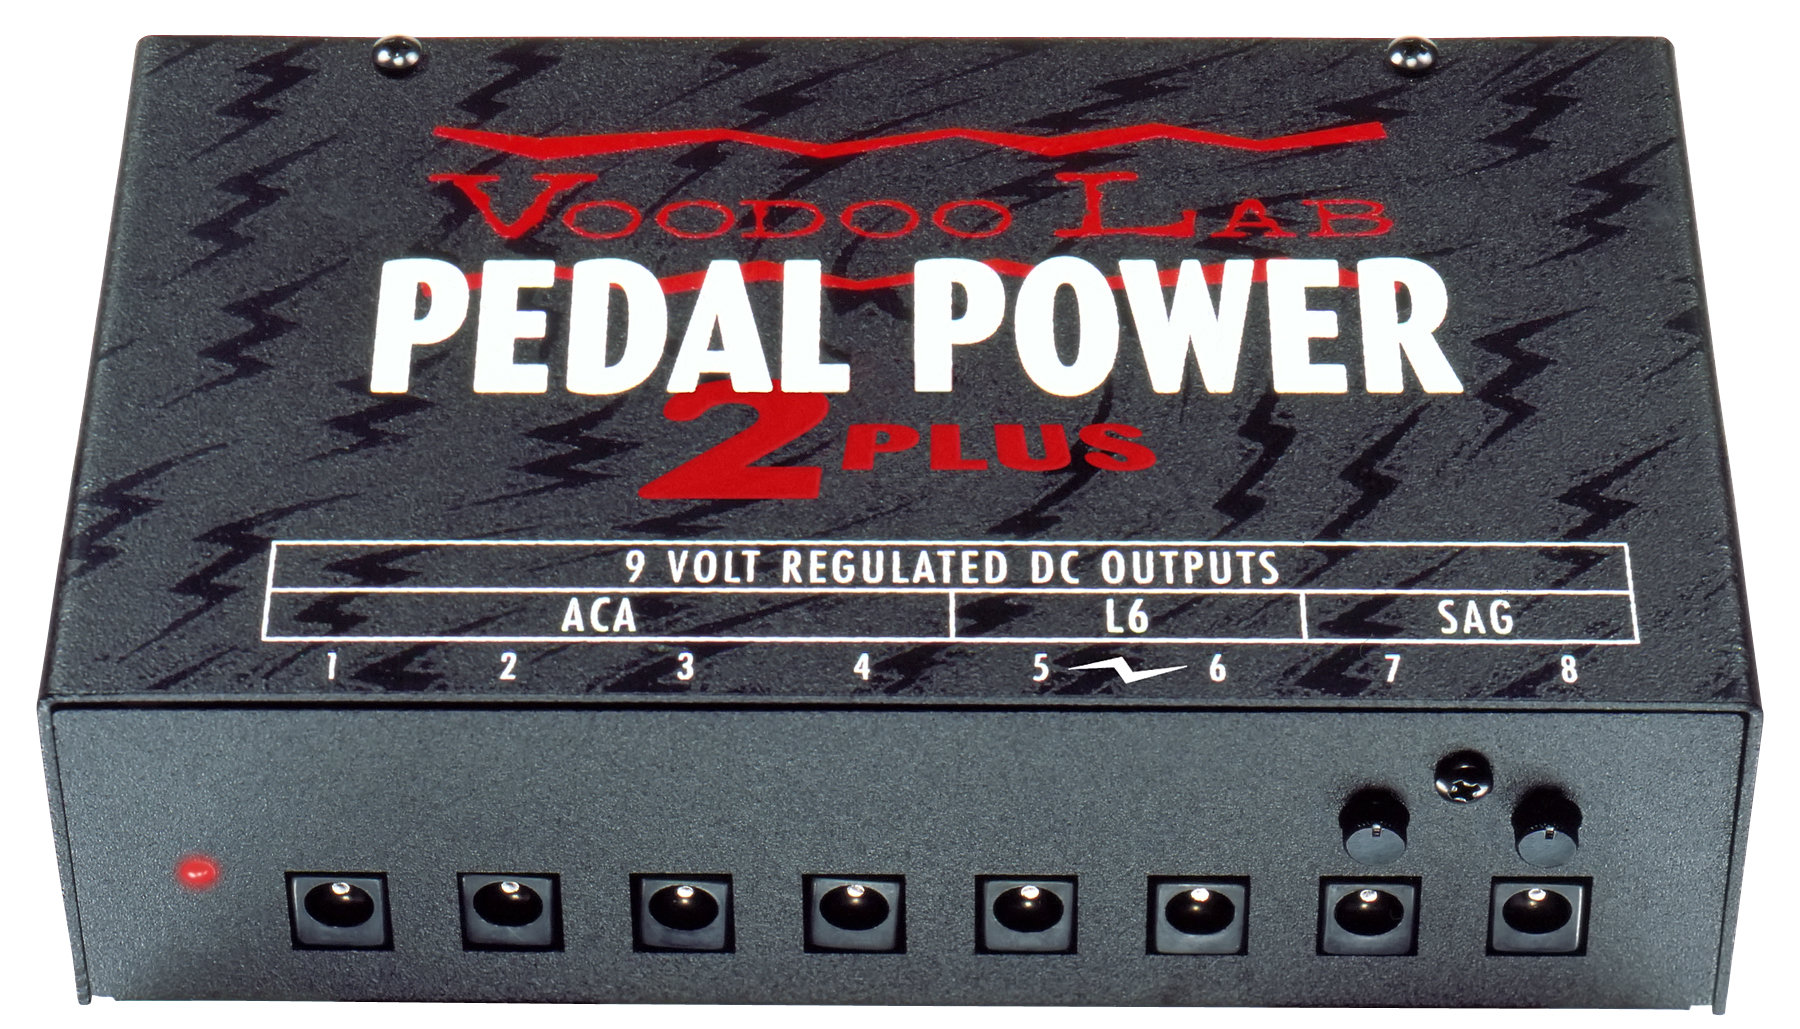 Voodoo Labs Pedal Power 2 Plus power supply